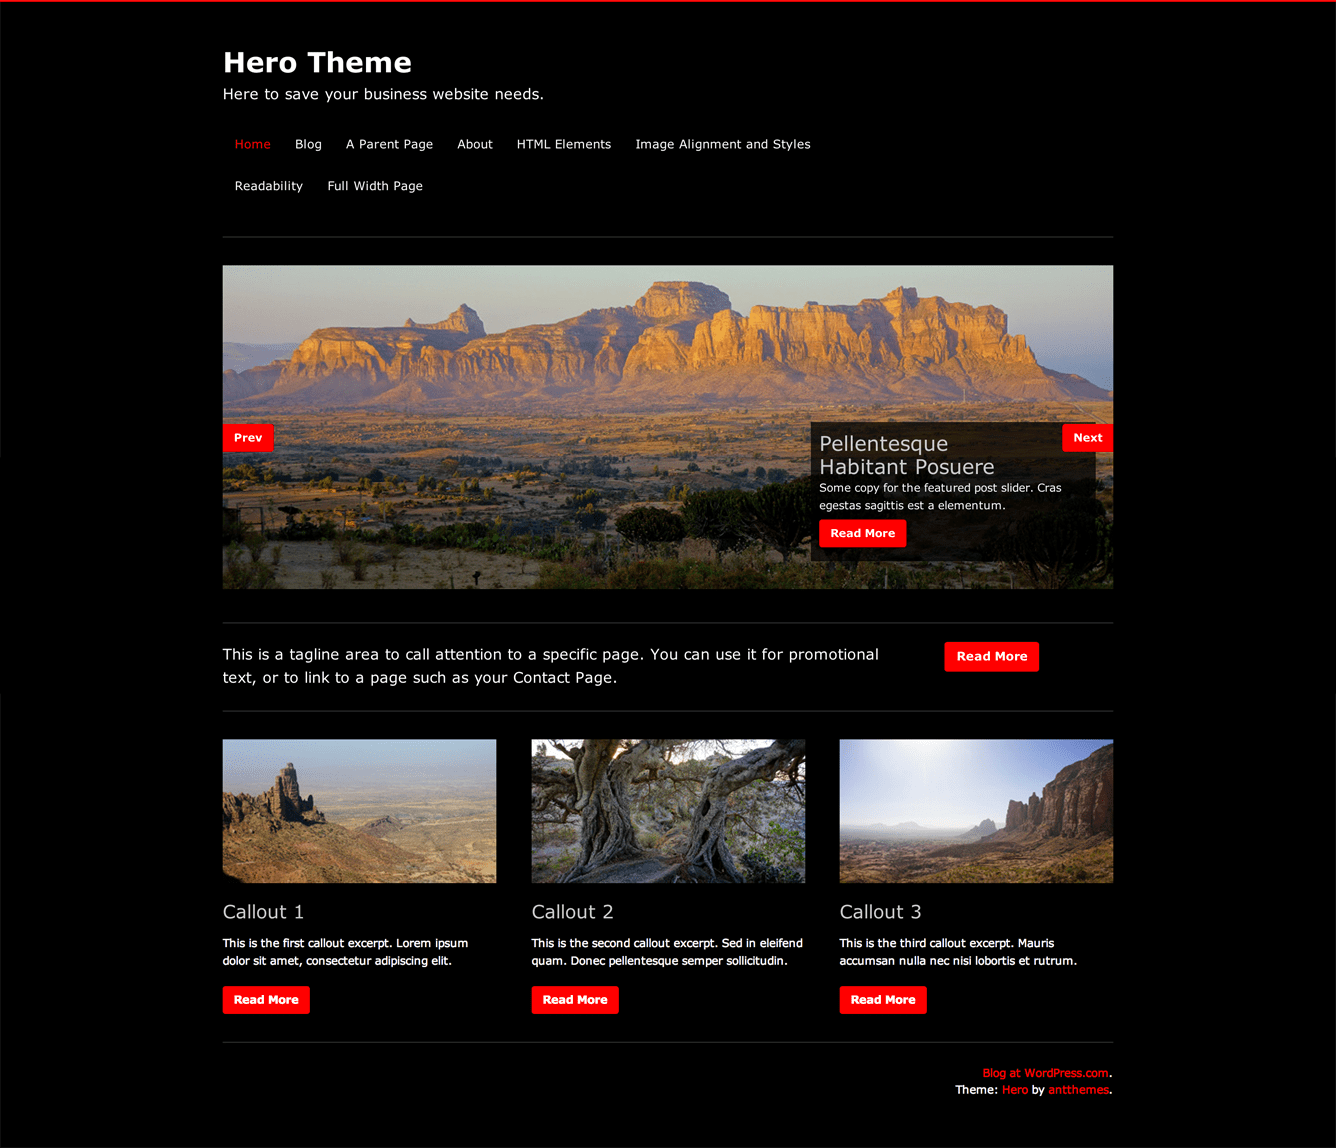 Hero's featured content-rich Front Page template